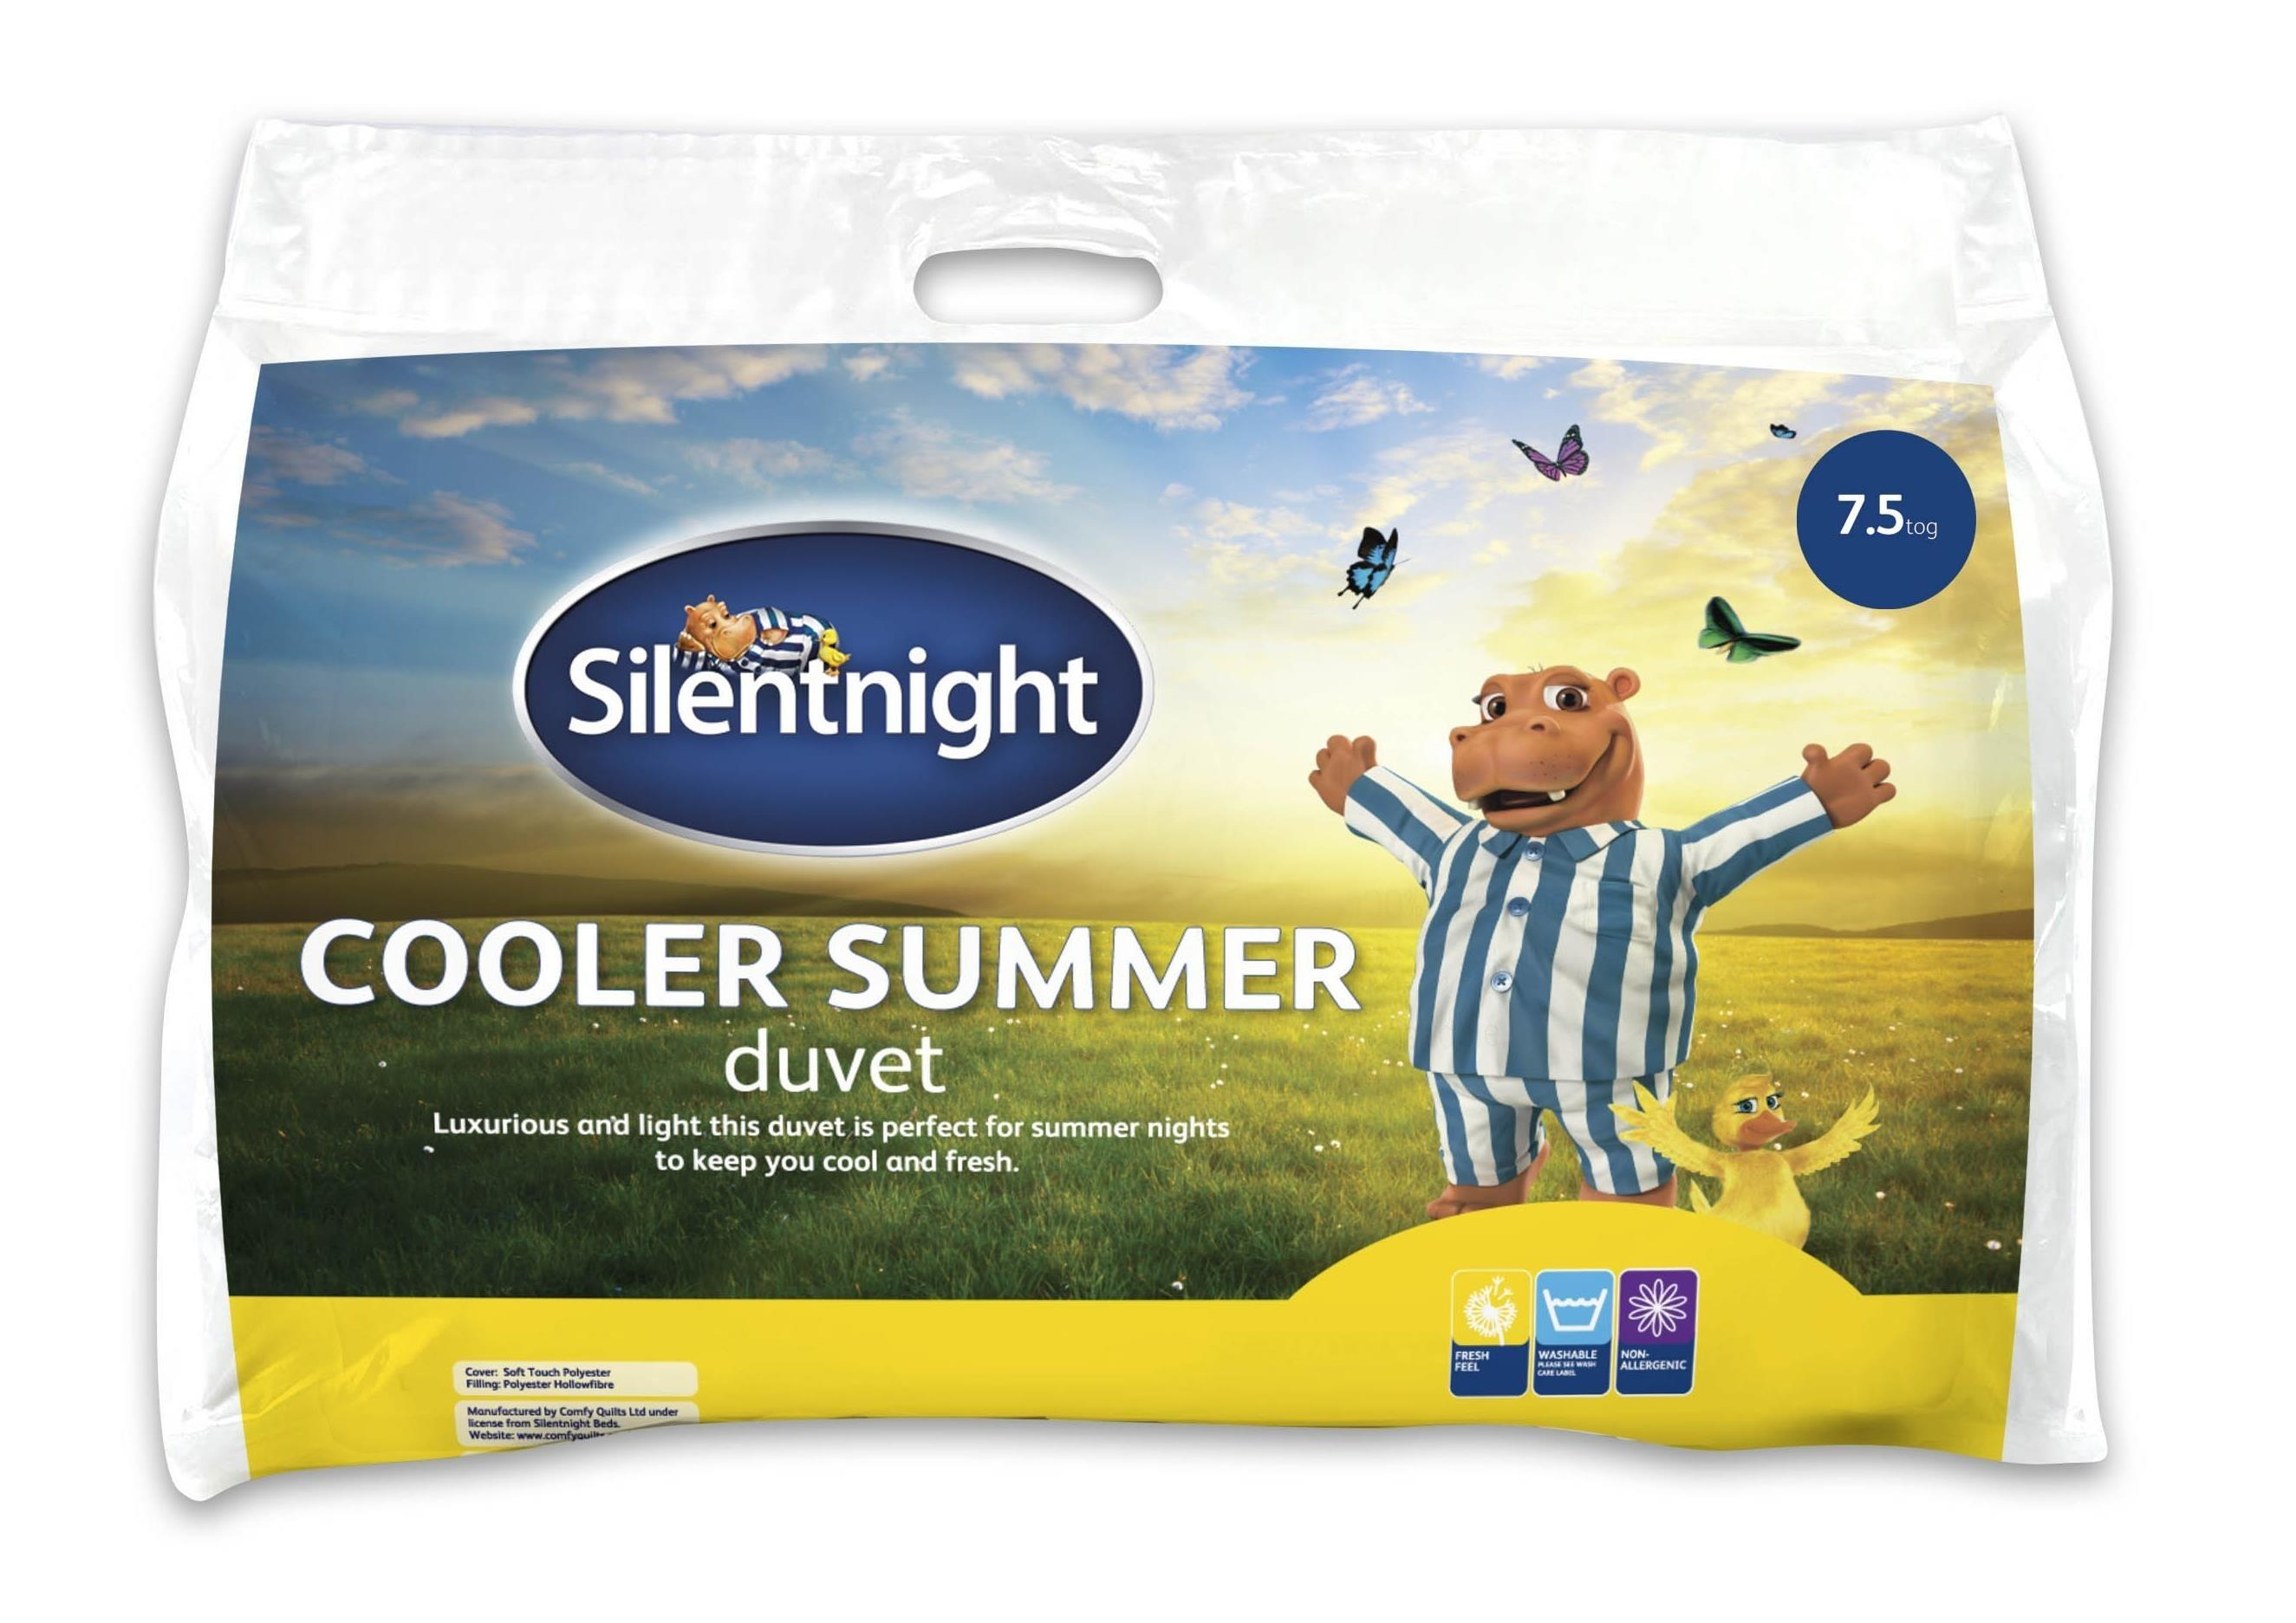 Silentnight Cooler Summer Duvet 7 5 Tog Ponden Home